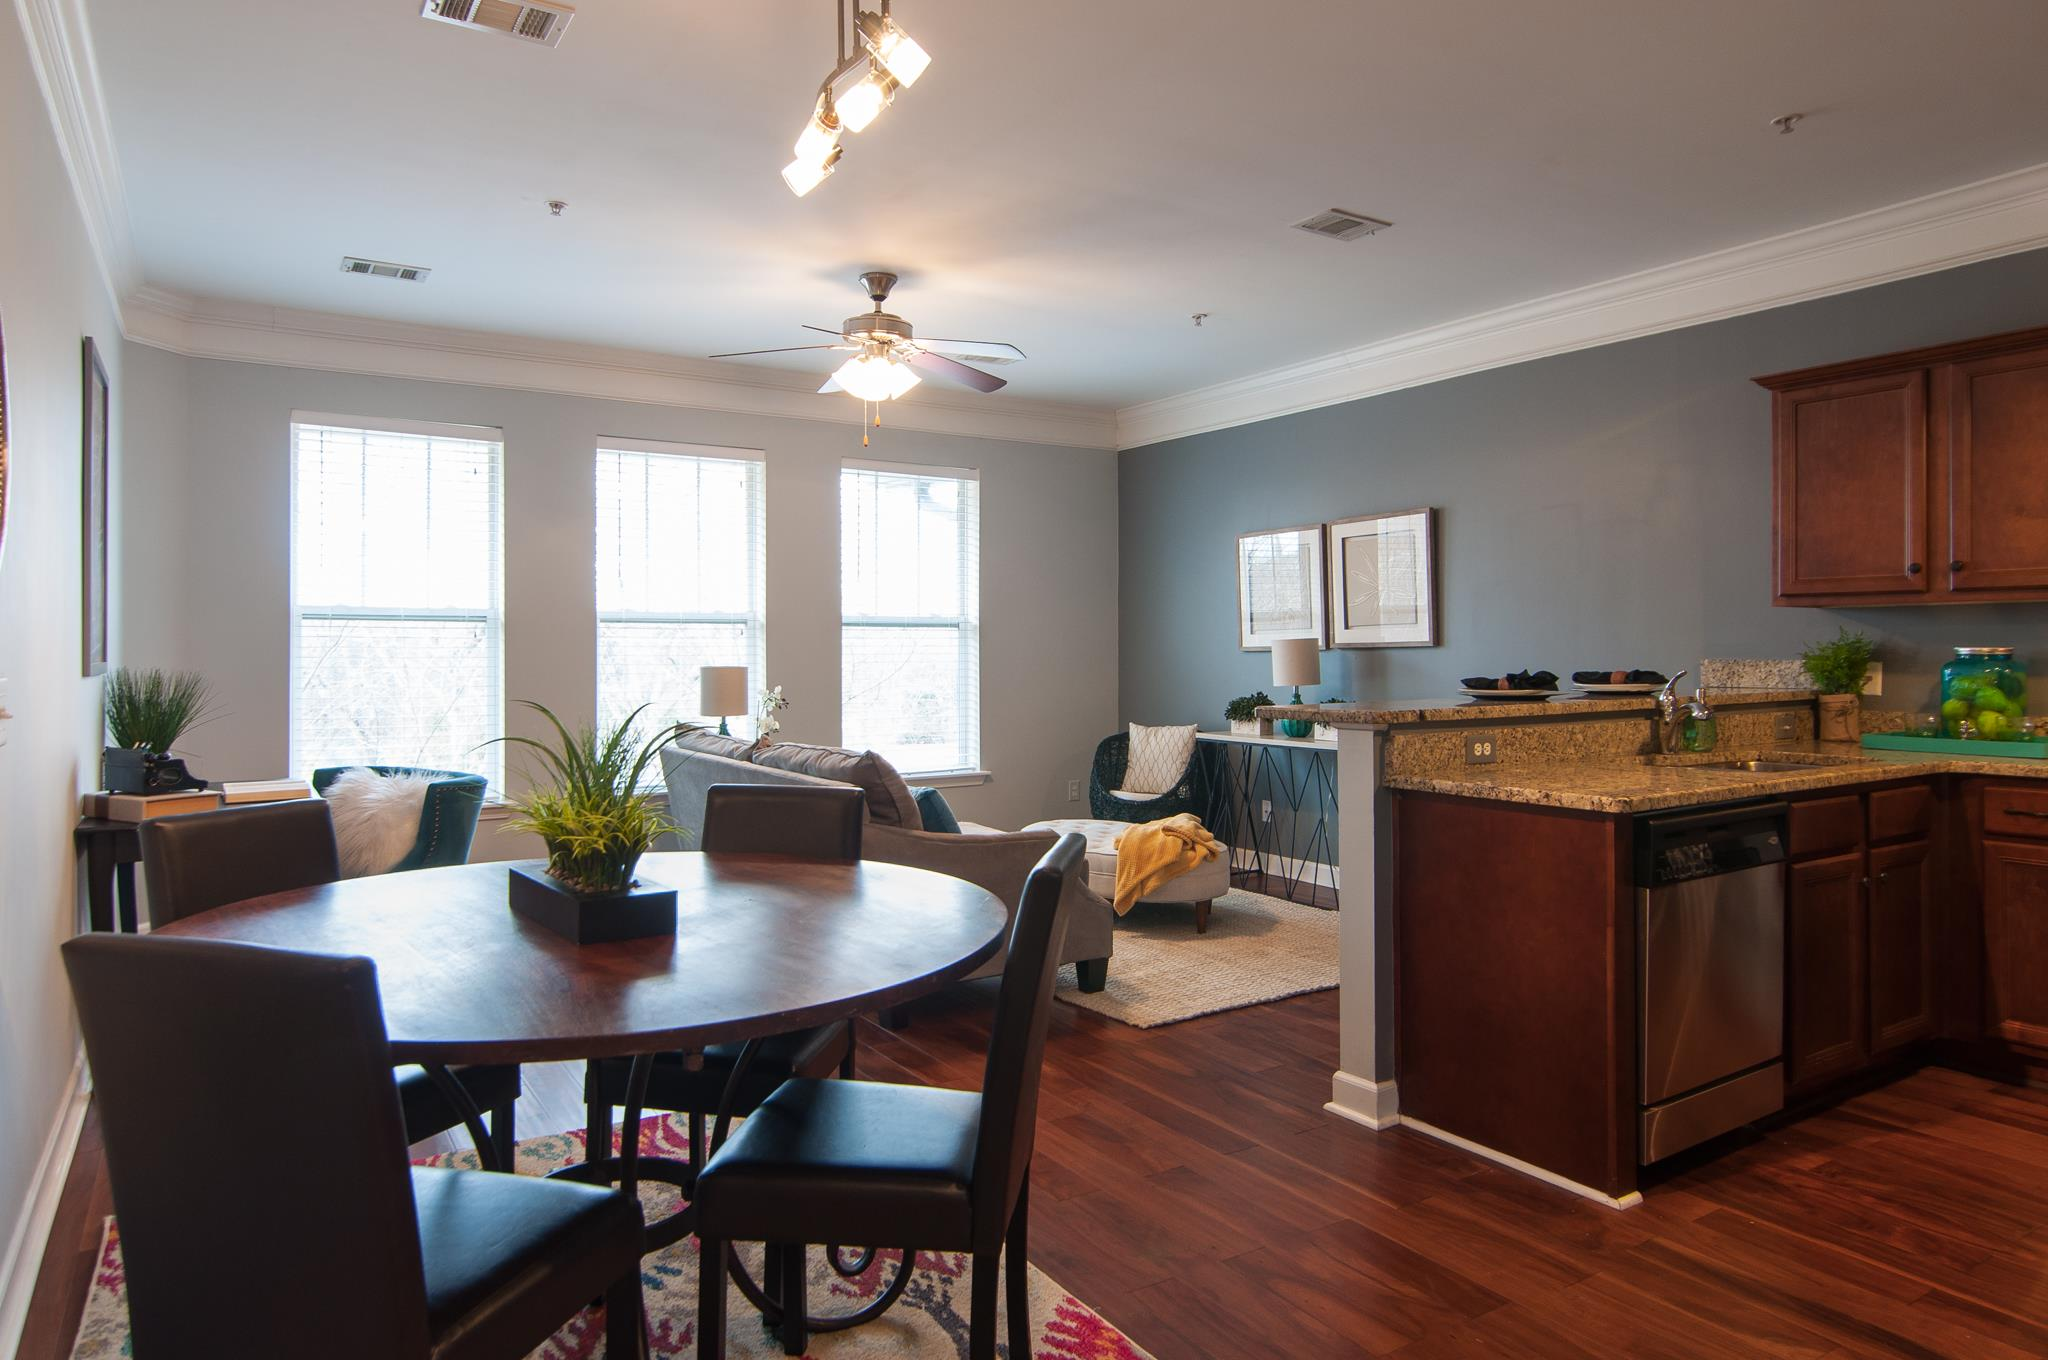 2310 Elliott Ave Apt 614, one of homes for sale in Nashville-Southeast